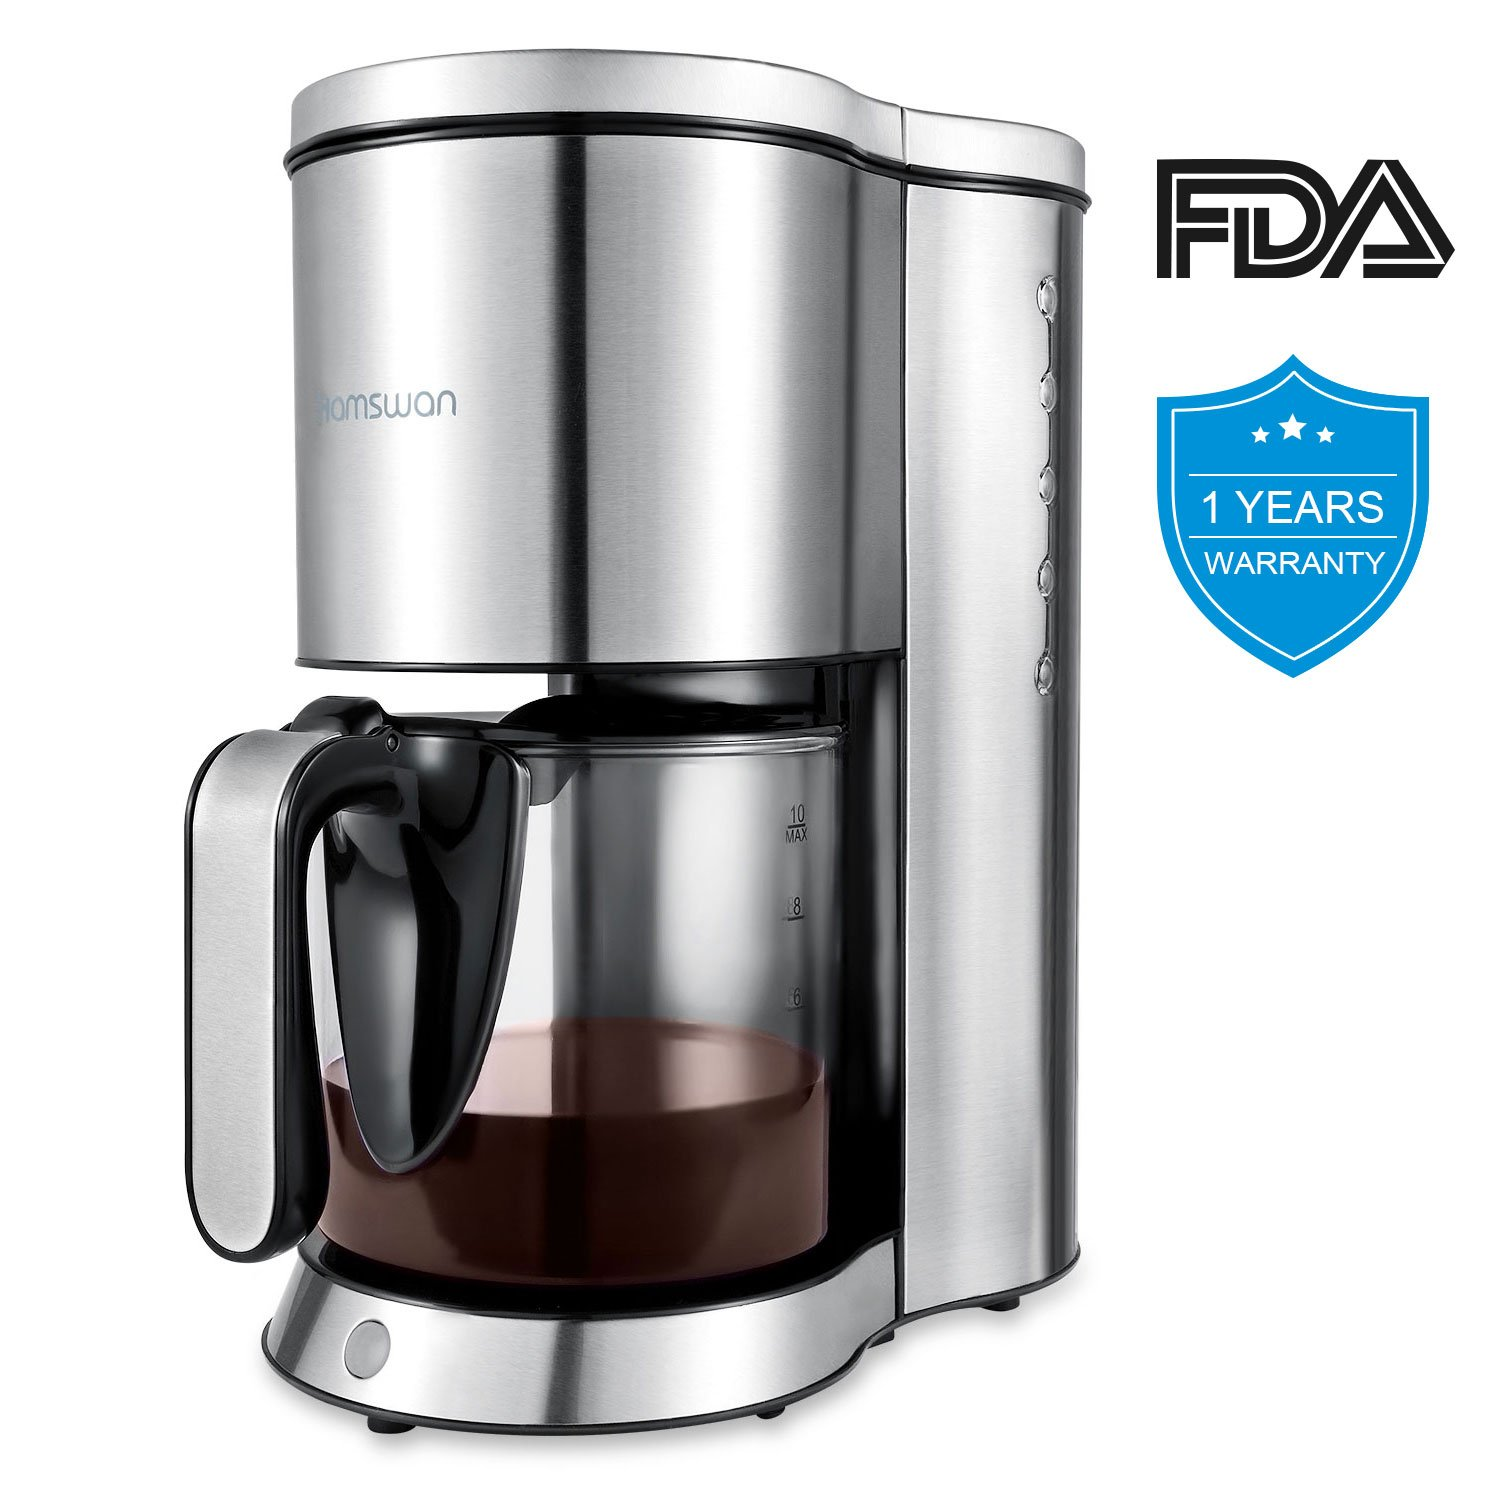 Coffee Maker, HAMSWAN AD-103 Drip Coffee Machine Anti-Drip Device Auto-Thermal 10-Cup Carafe for Home & Office Use by HAMSWAN